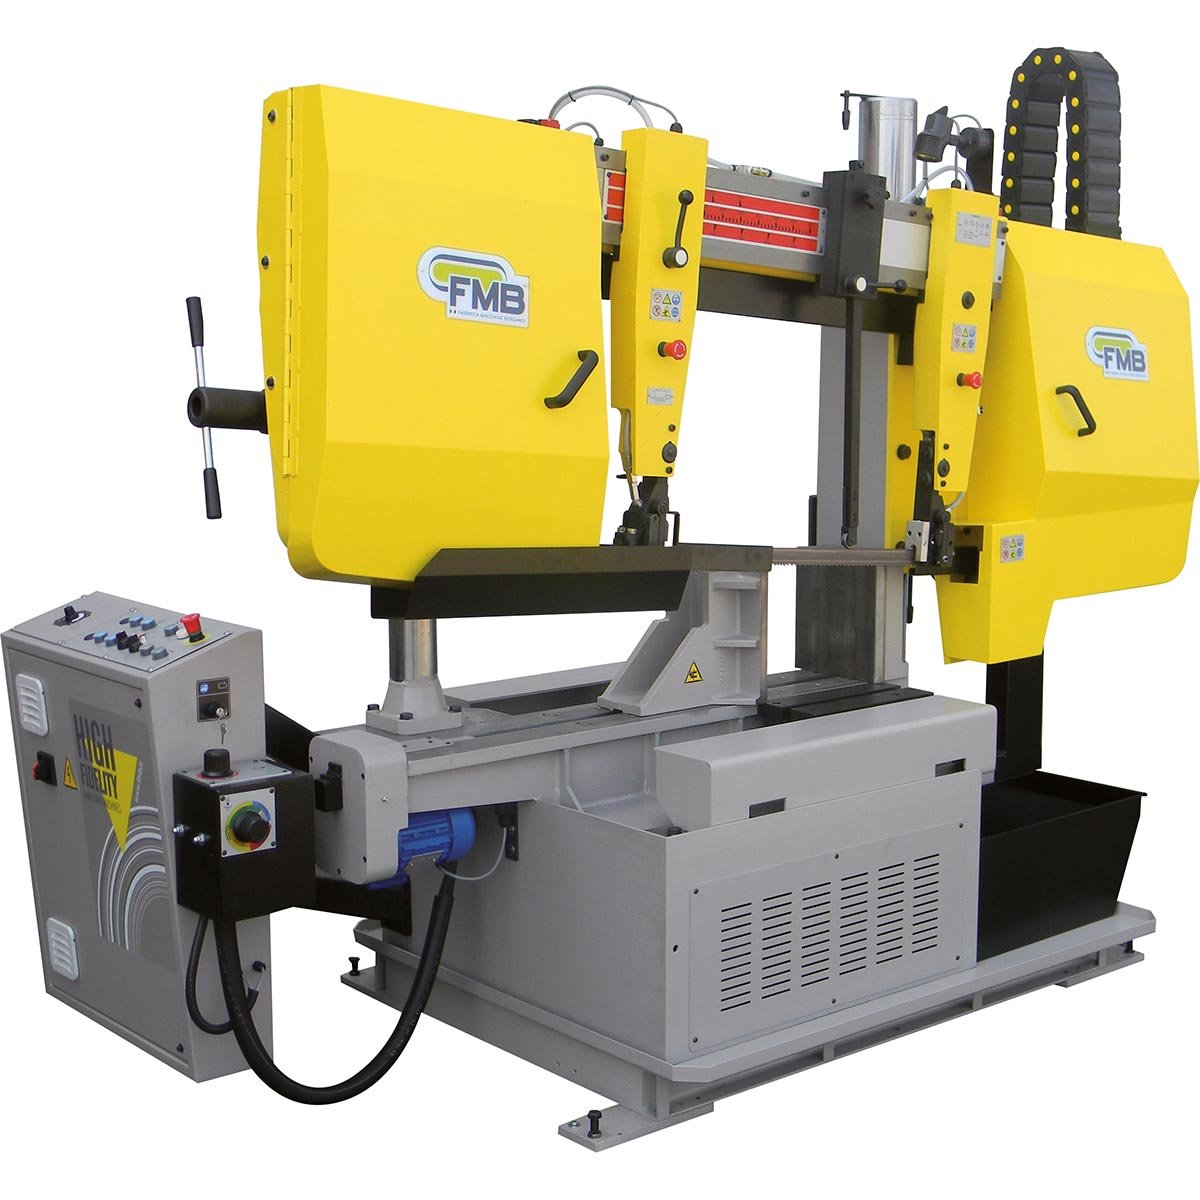 Olimpus 1 - FMB Semi-Automatic Band Saw